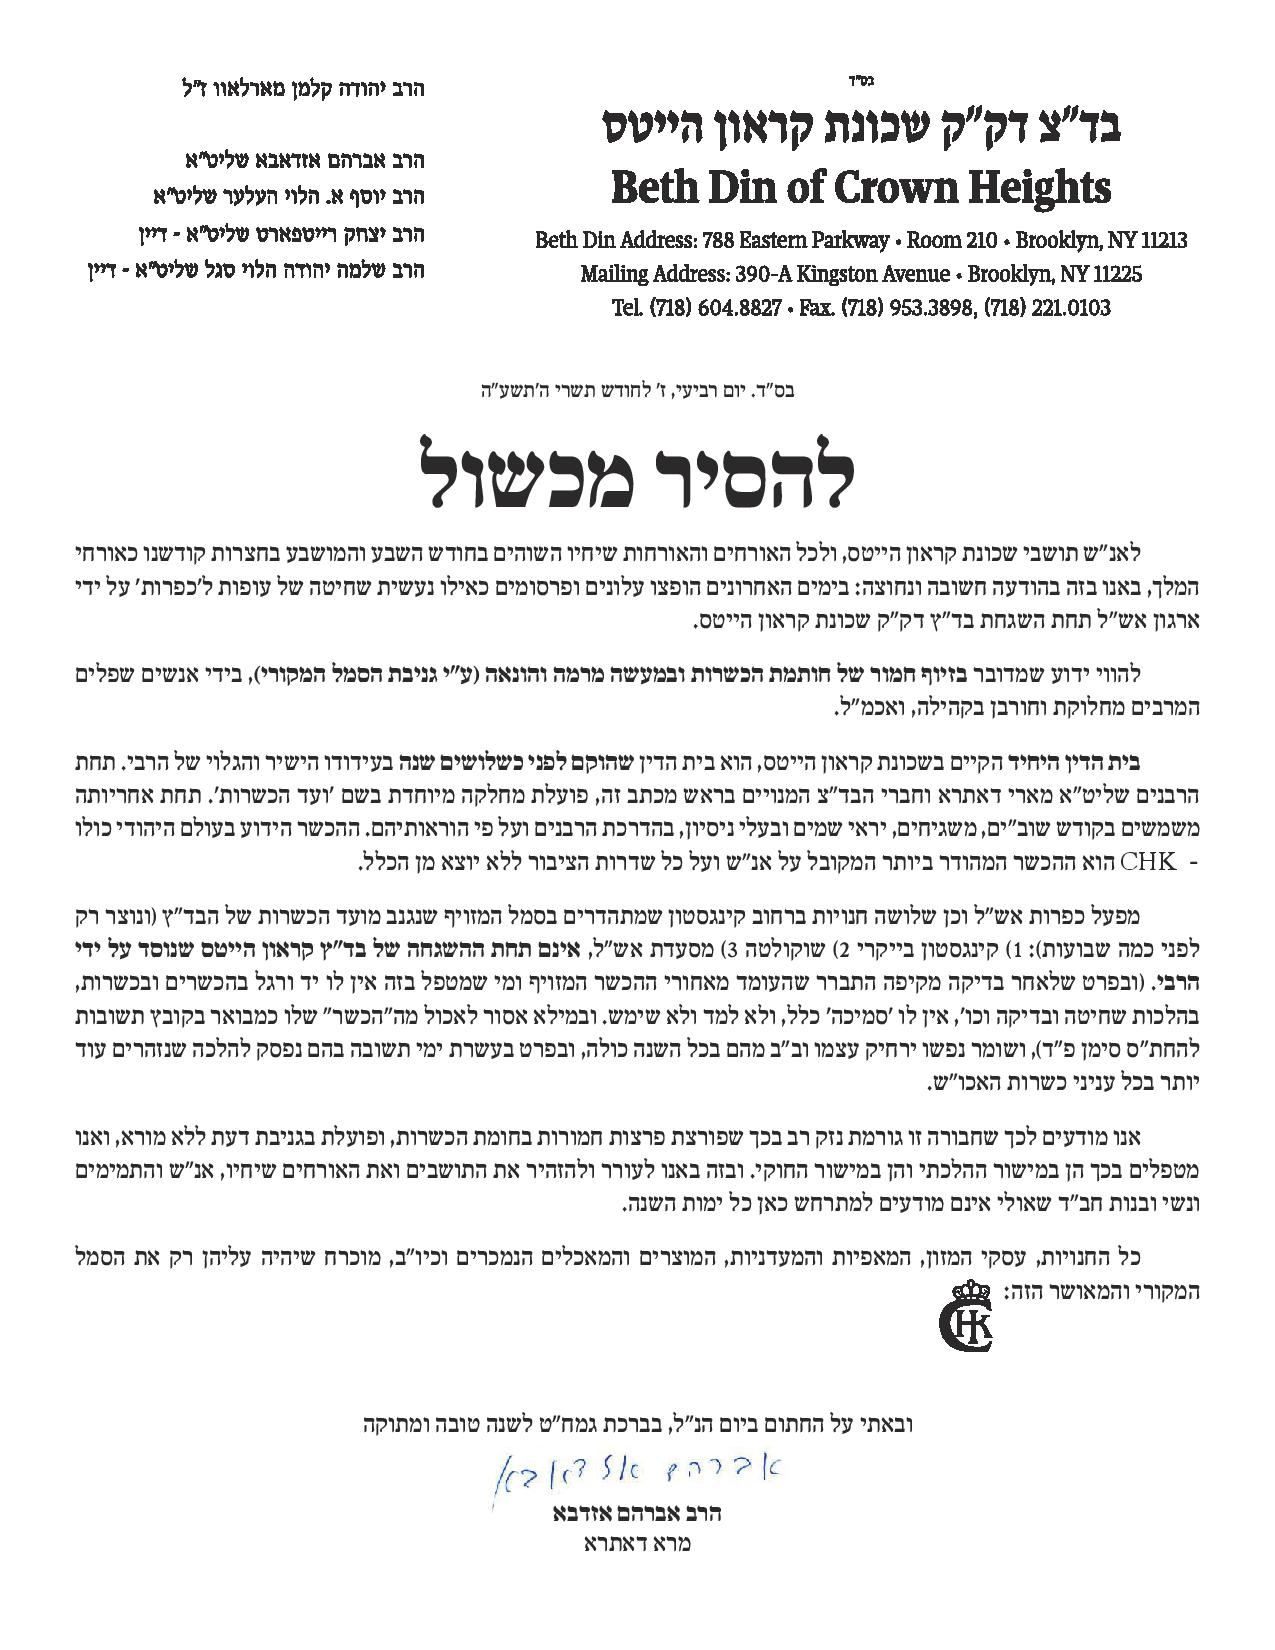 Rabbi osdoba badatz hechsher being fraudulently used crownheights leasir michshol page 001 biocorpaavc Image collections